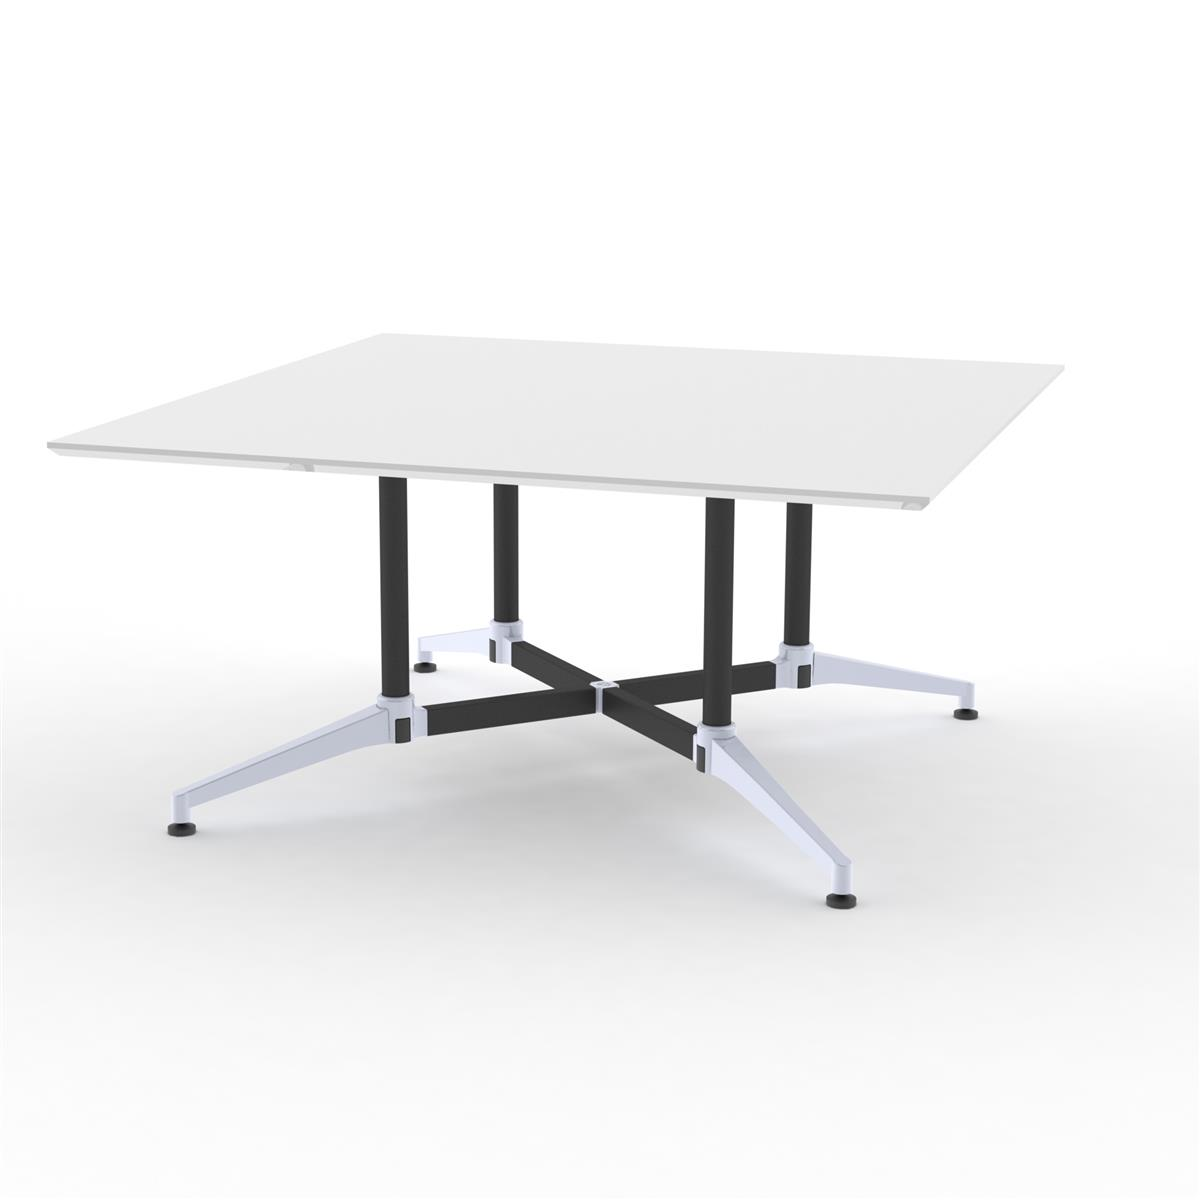 X1 Seamless Table 150 x 150 cm - hvit melamin & sort / alu understell